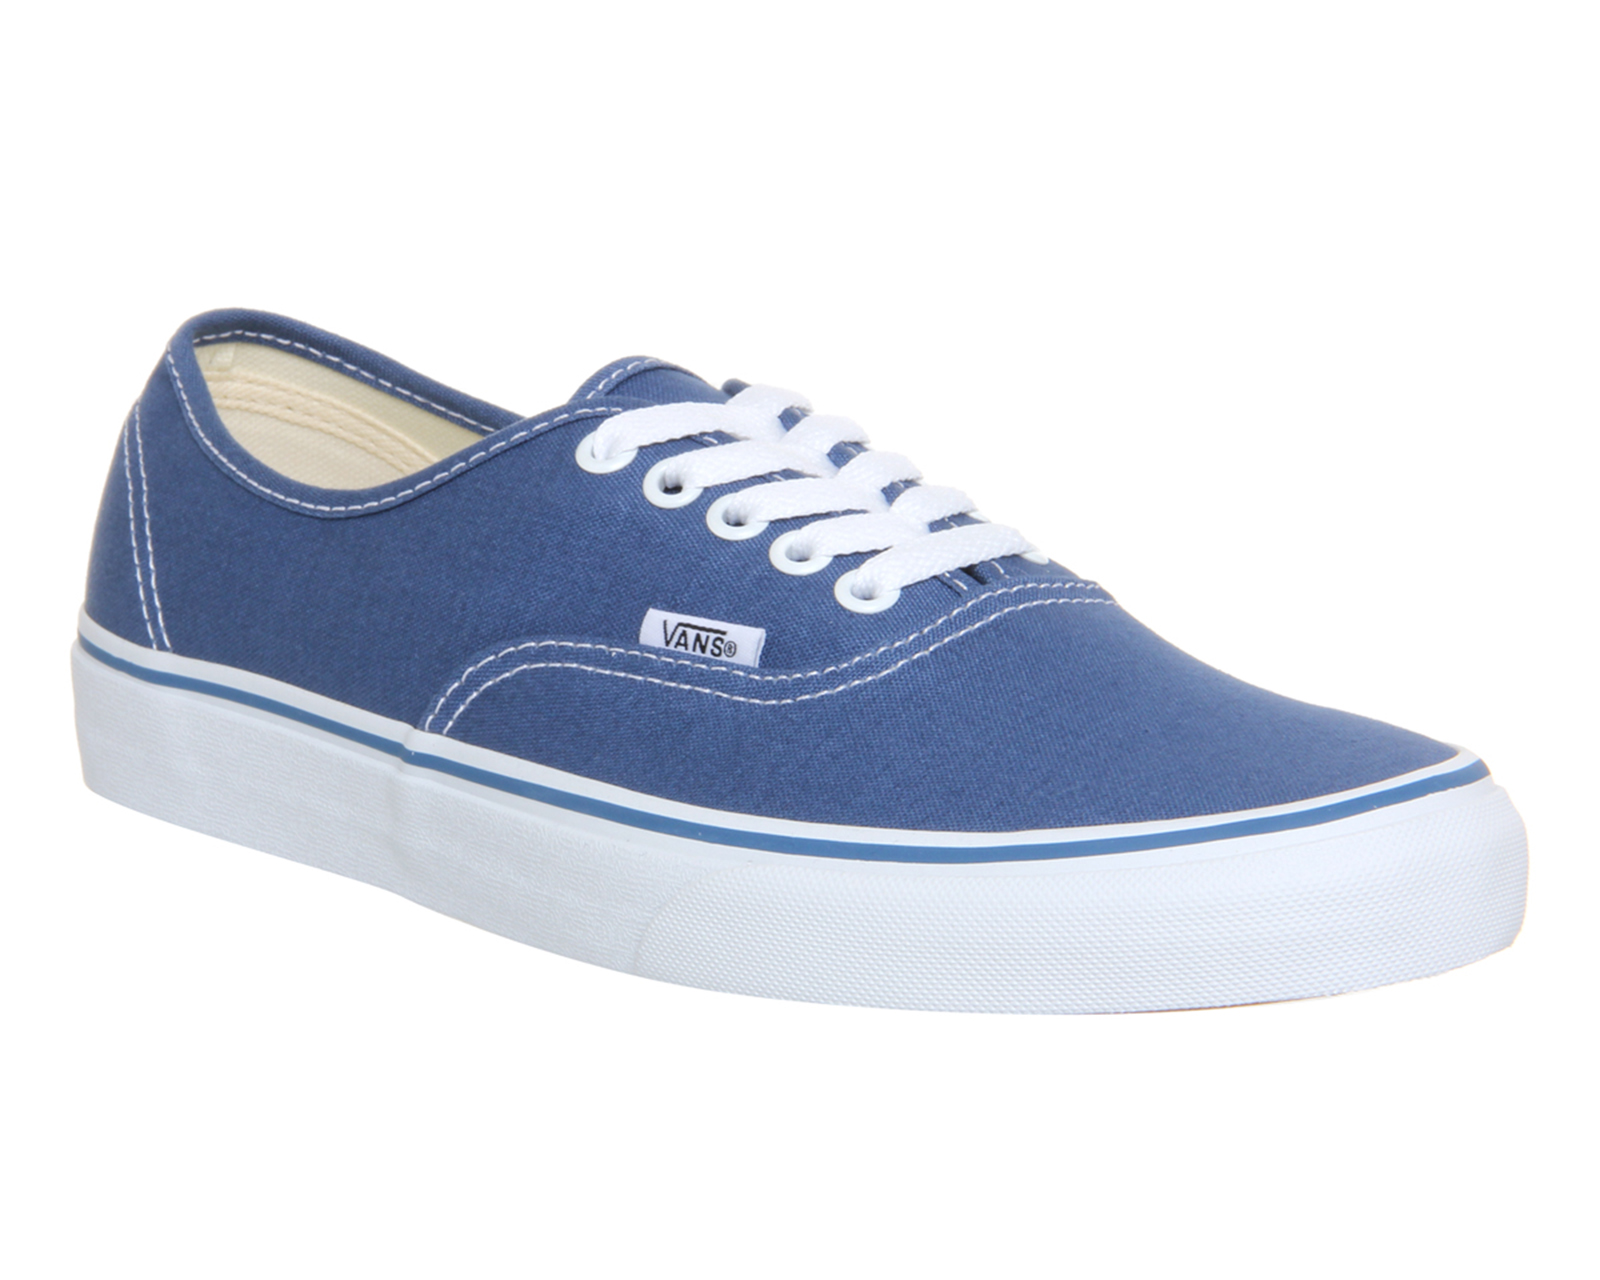 Mens Vans Authentic NAVY Trainers Shoes | eBay